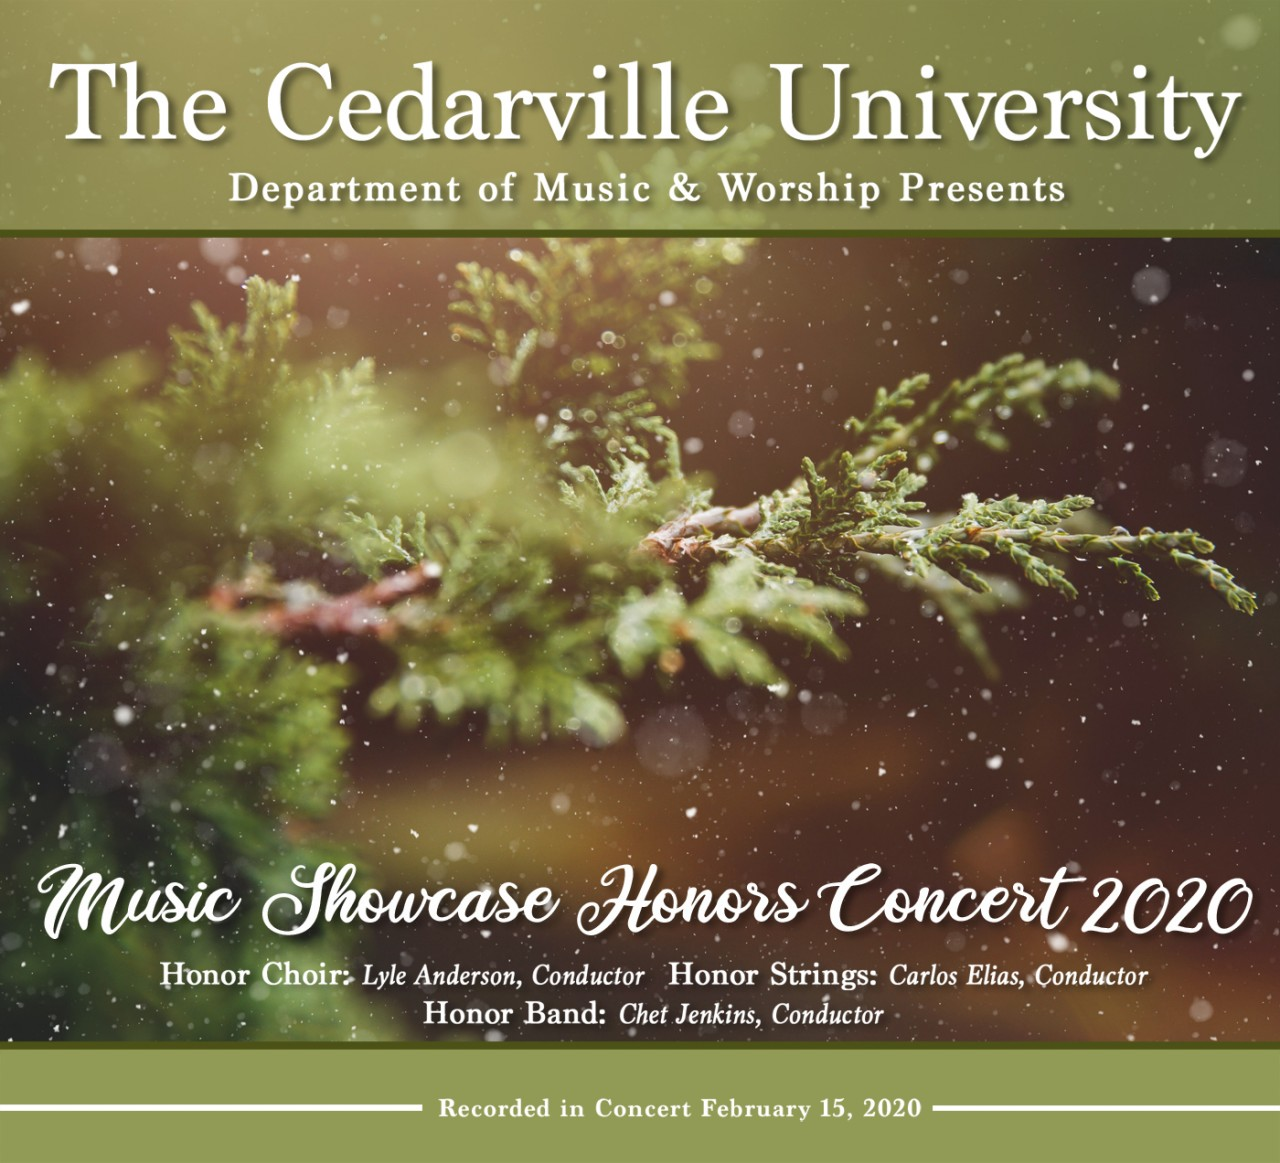 Cedarville University Christmas Concert 2020 Cedarville University Showcase Honor Band, Choir, and Orchestra 2